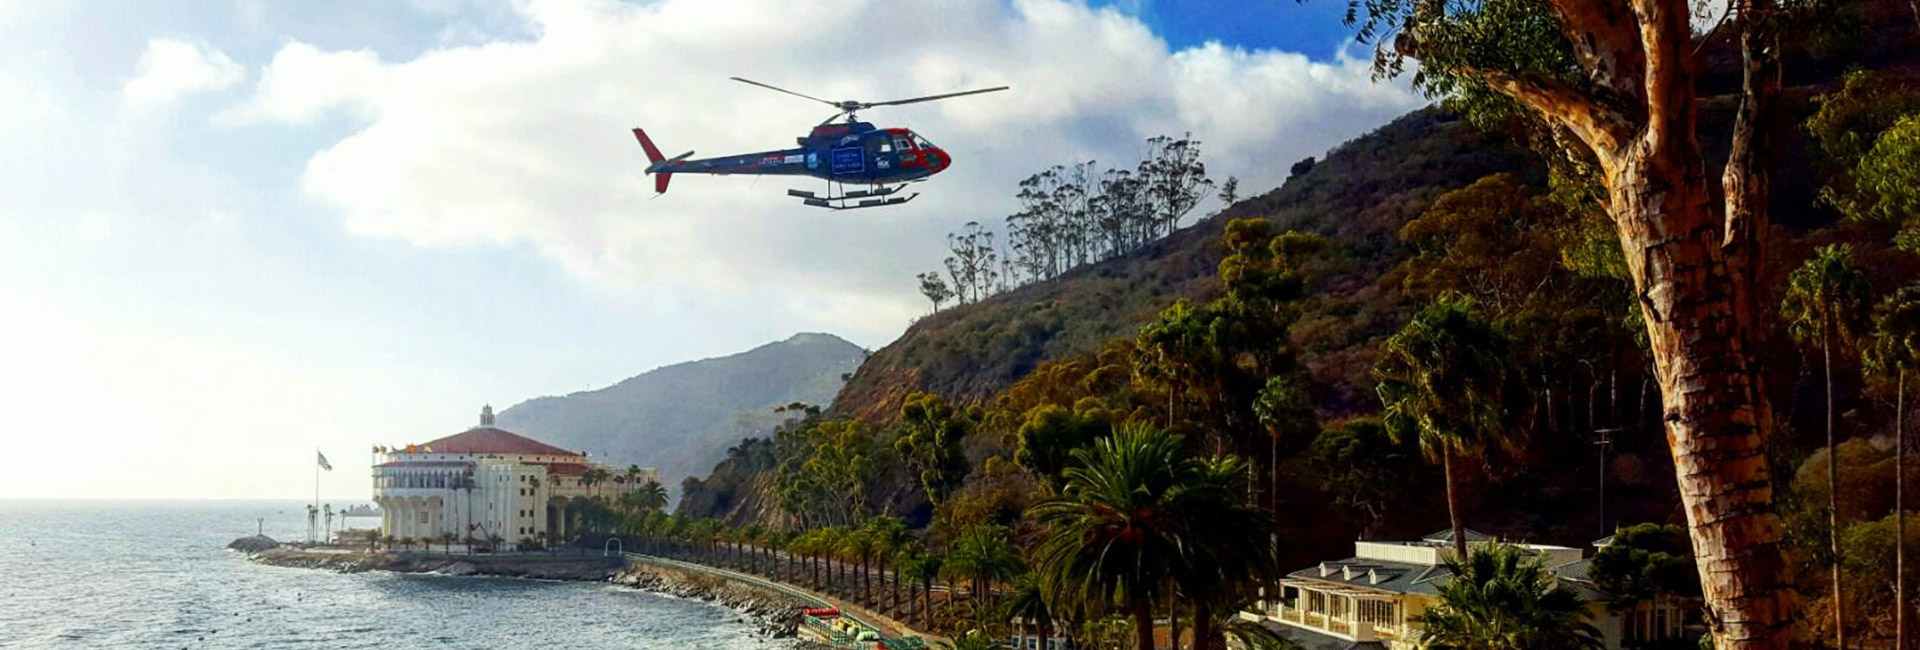 Catalina Island Hotel Helicopter Package Room Specials